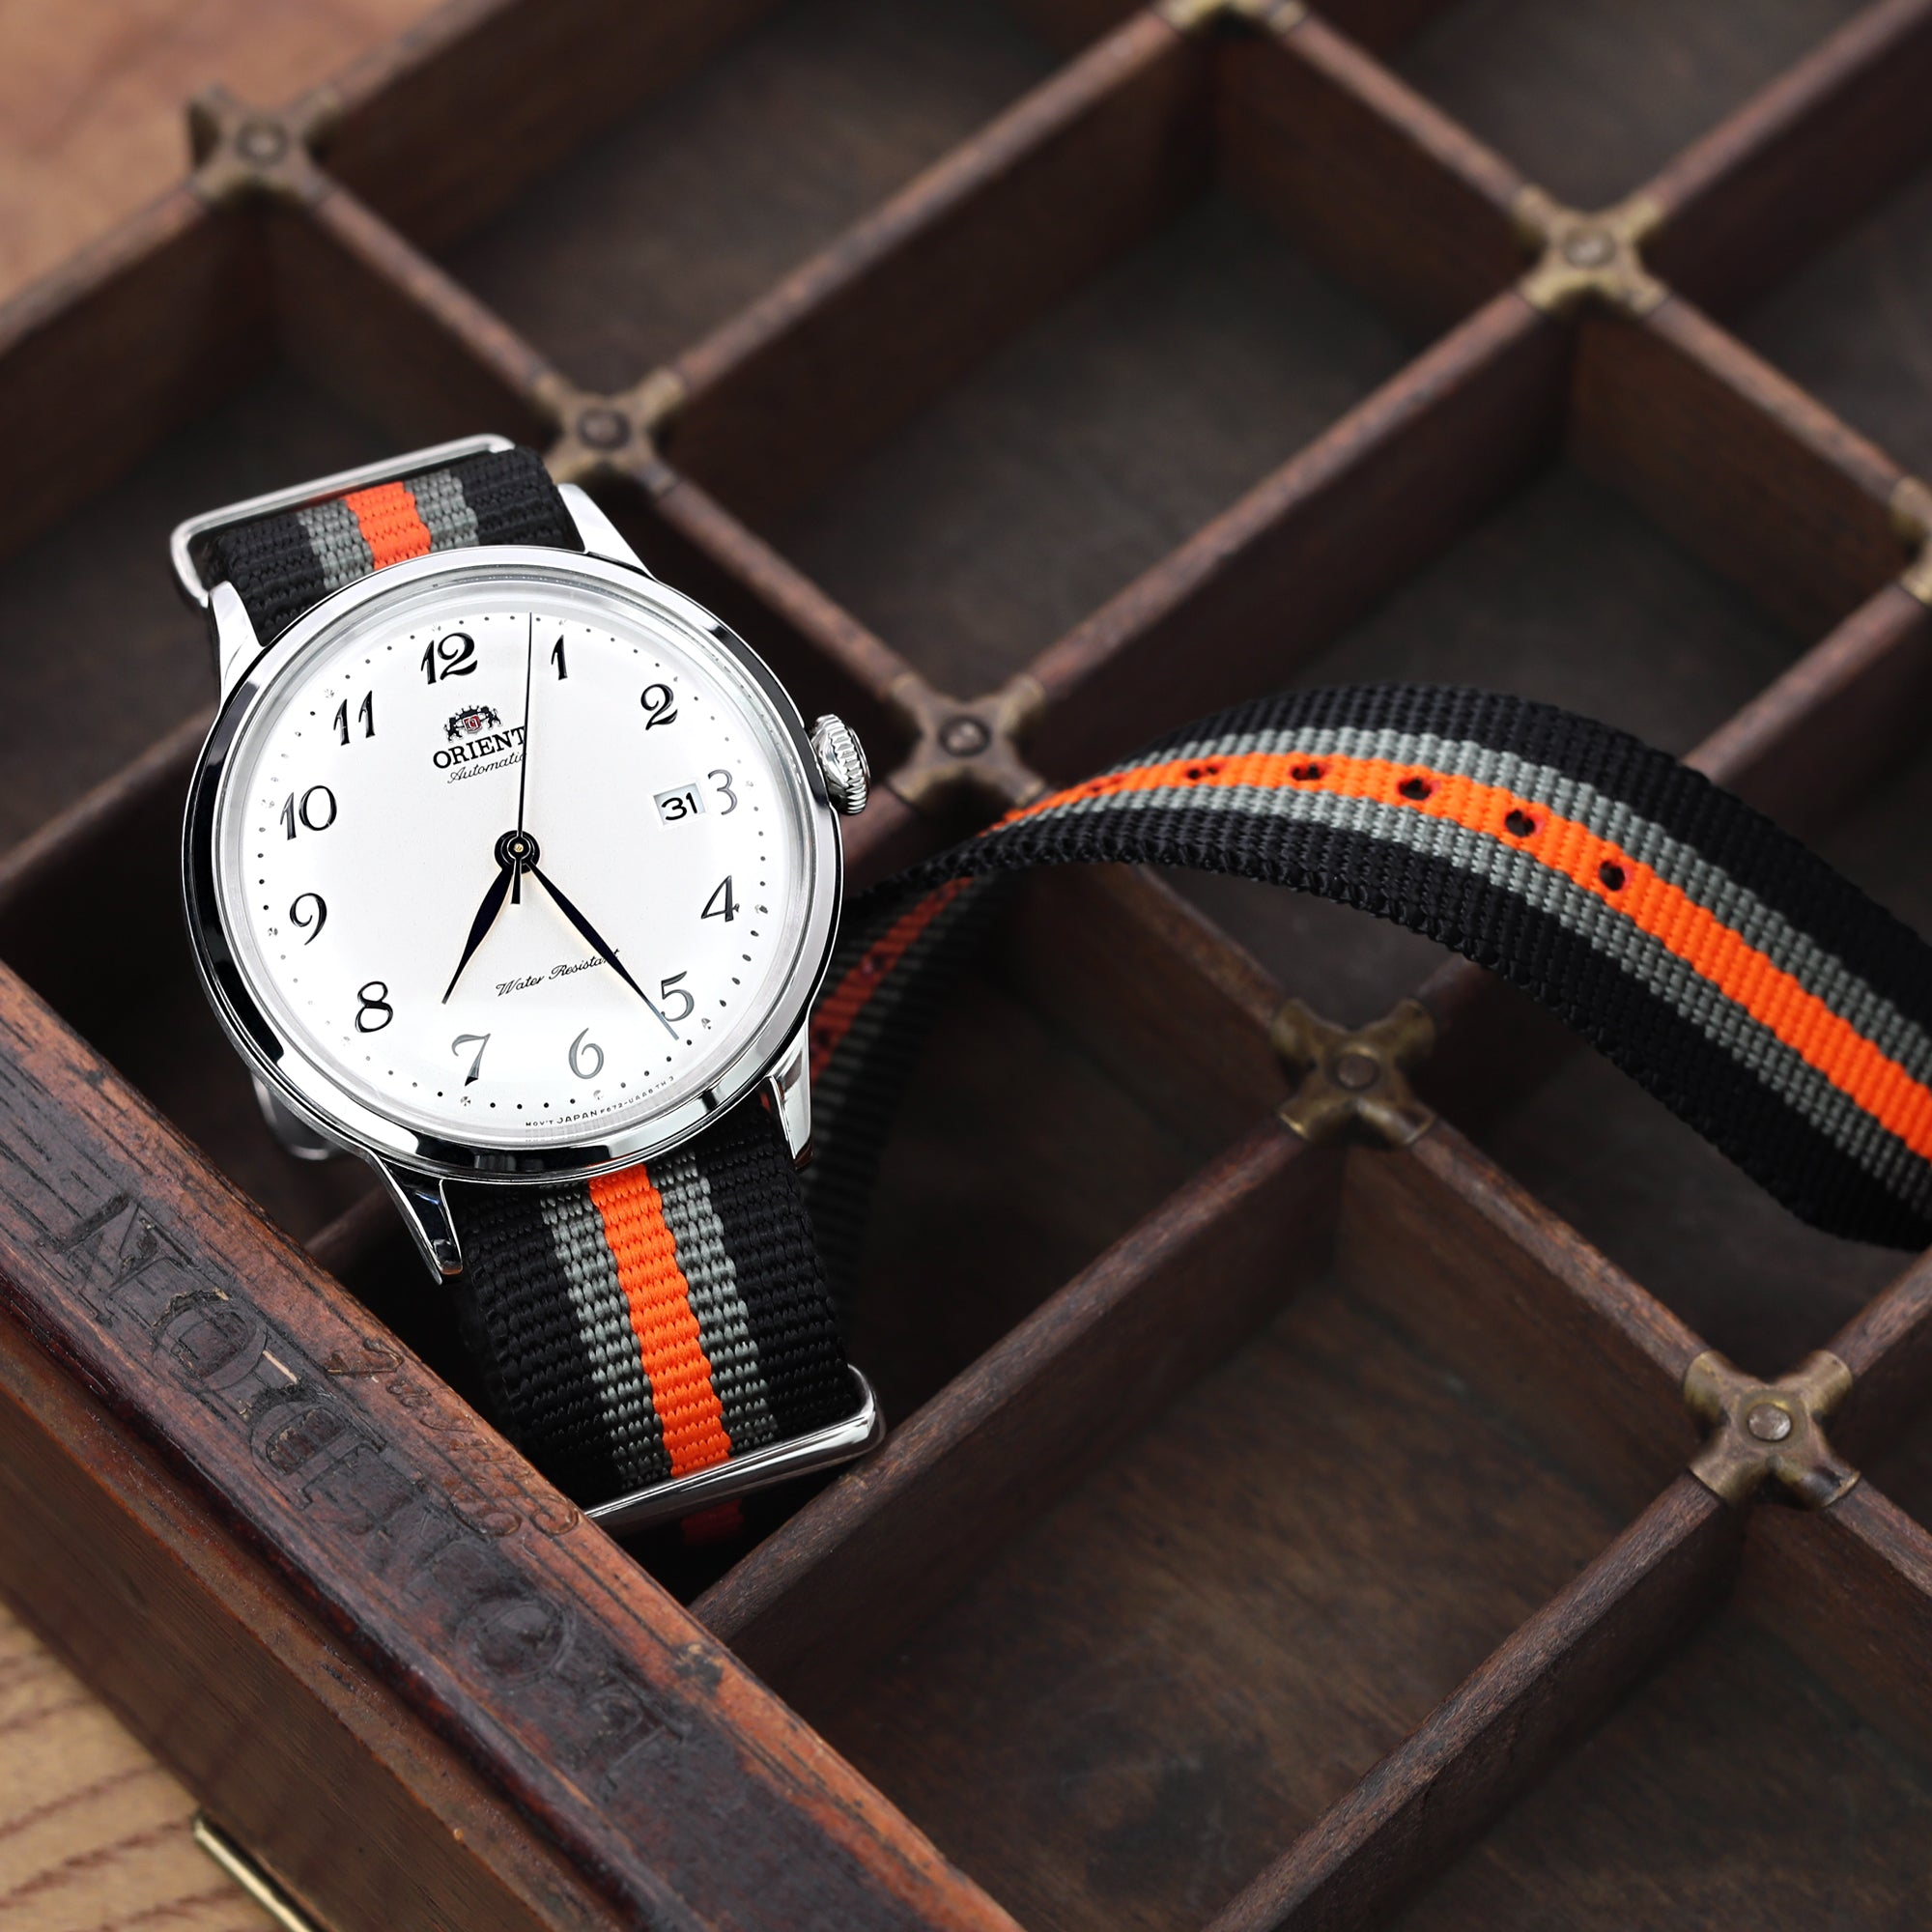 MiLTAT 21mm or 22mm G10 NATO Bullet Tail Watch Strap Ballistic Nylon Polished Black Grey & Orange Stripes Strapcode Watch Bands